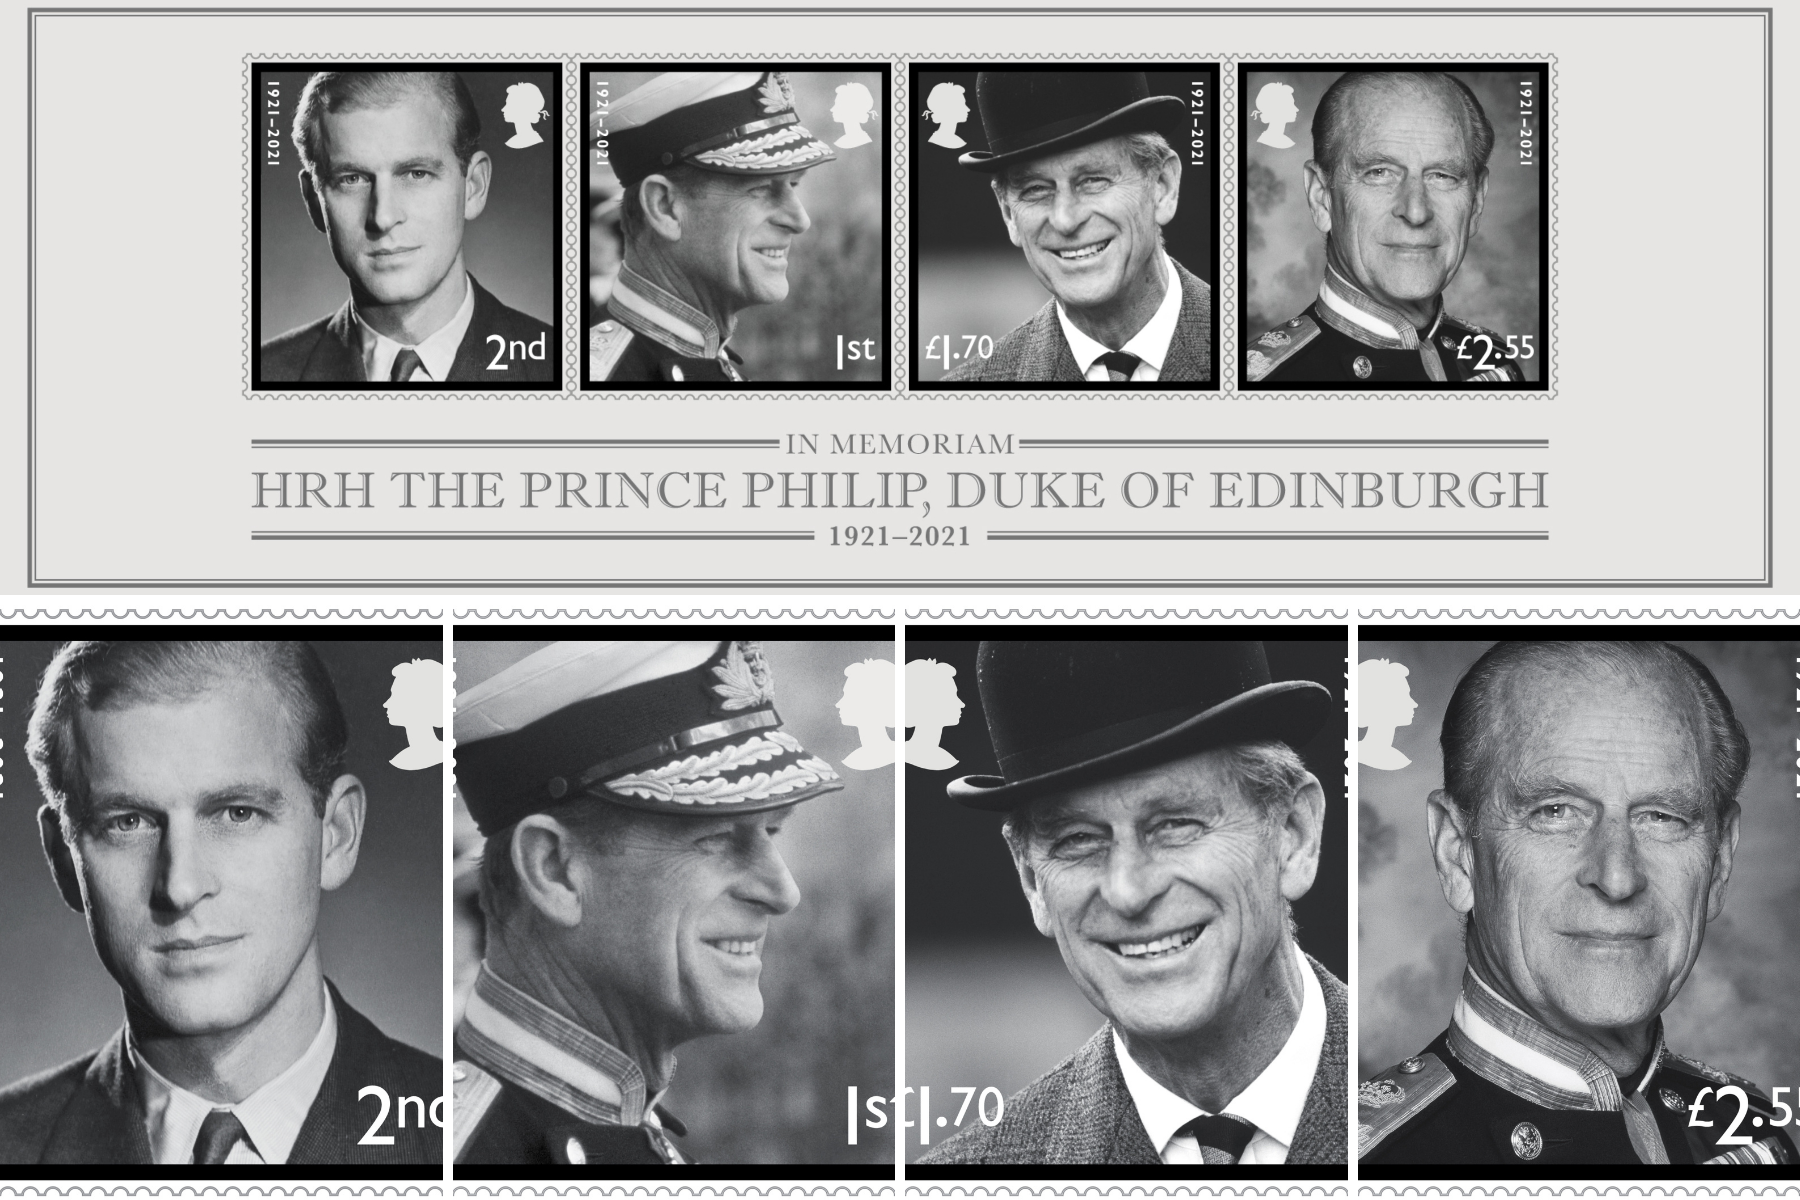 You can pre-order new Royal Mail stamps in memory of Prince Philip